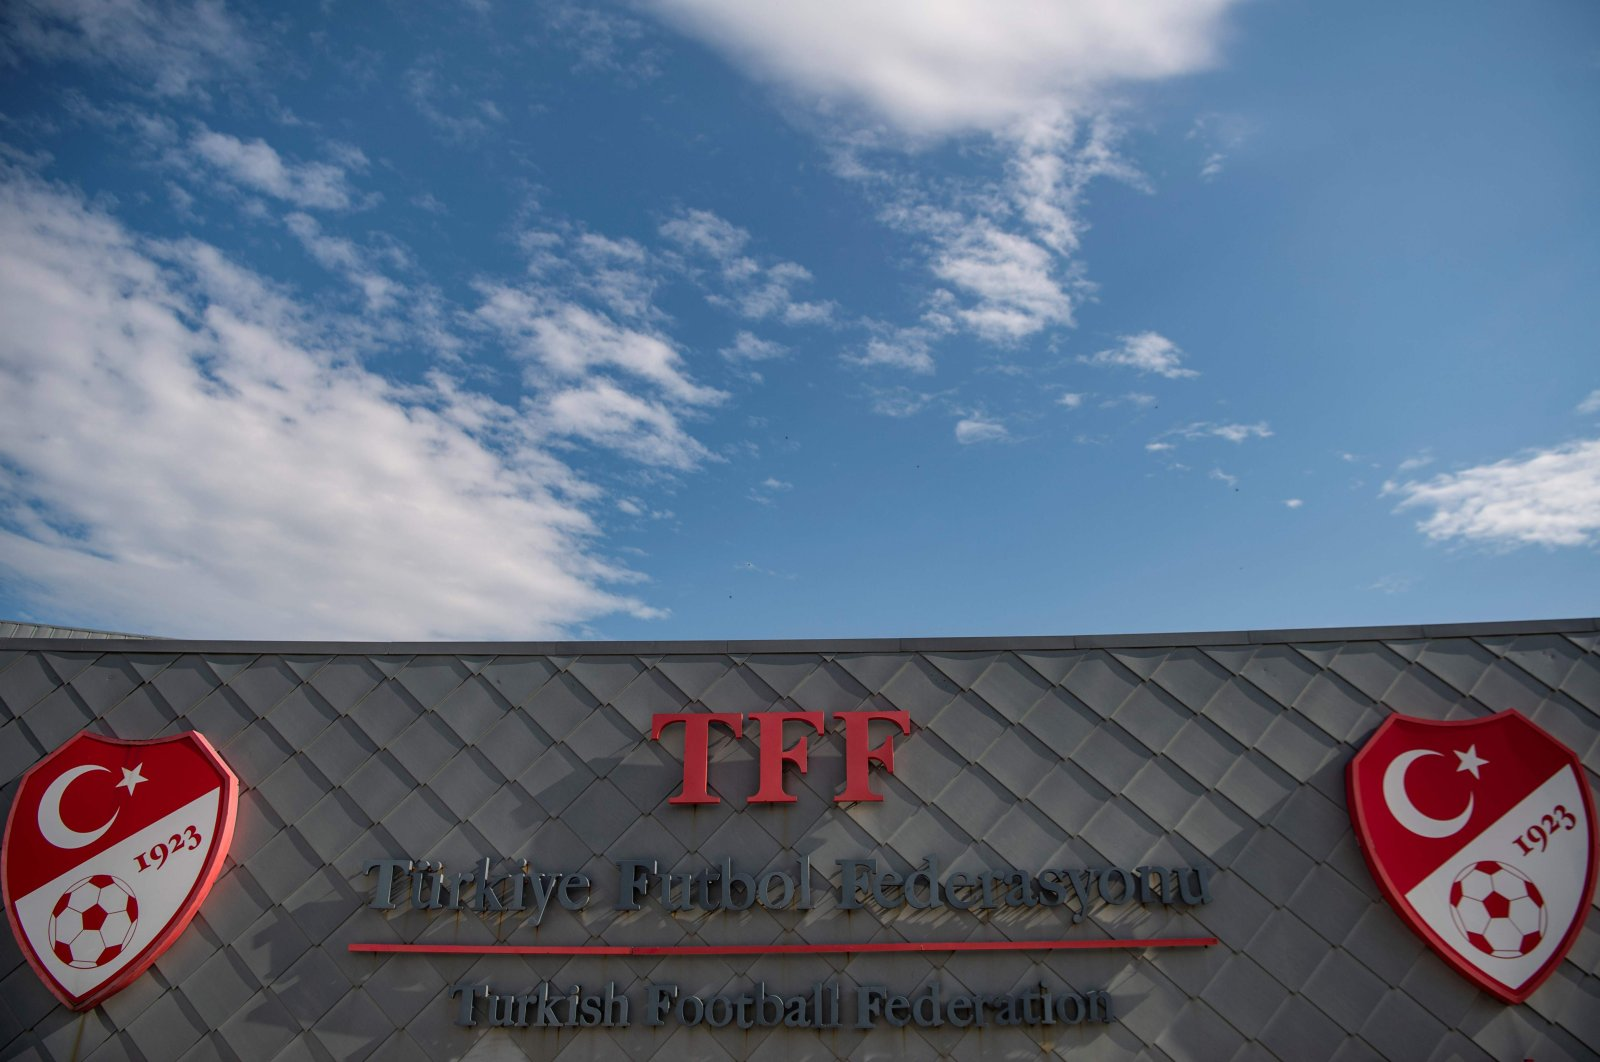 Logo of Turkish Football Federation (TFF) at the entrance of the organization's headquarters, Istanbul, Turkey, May 6, 2020. (AFP Photo)